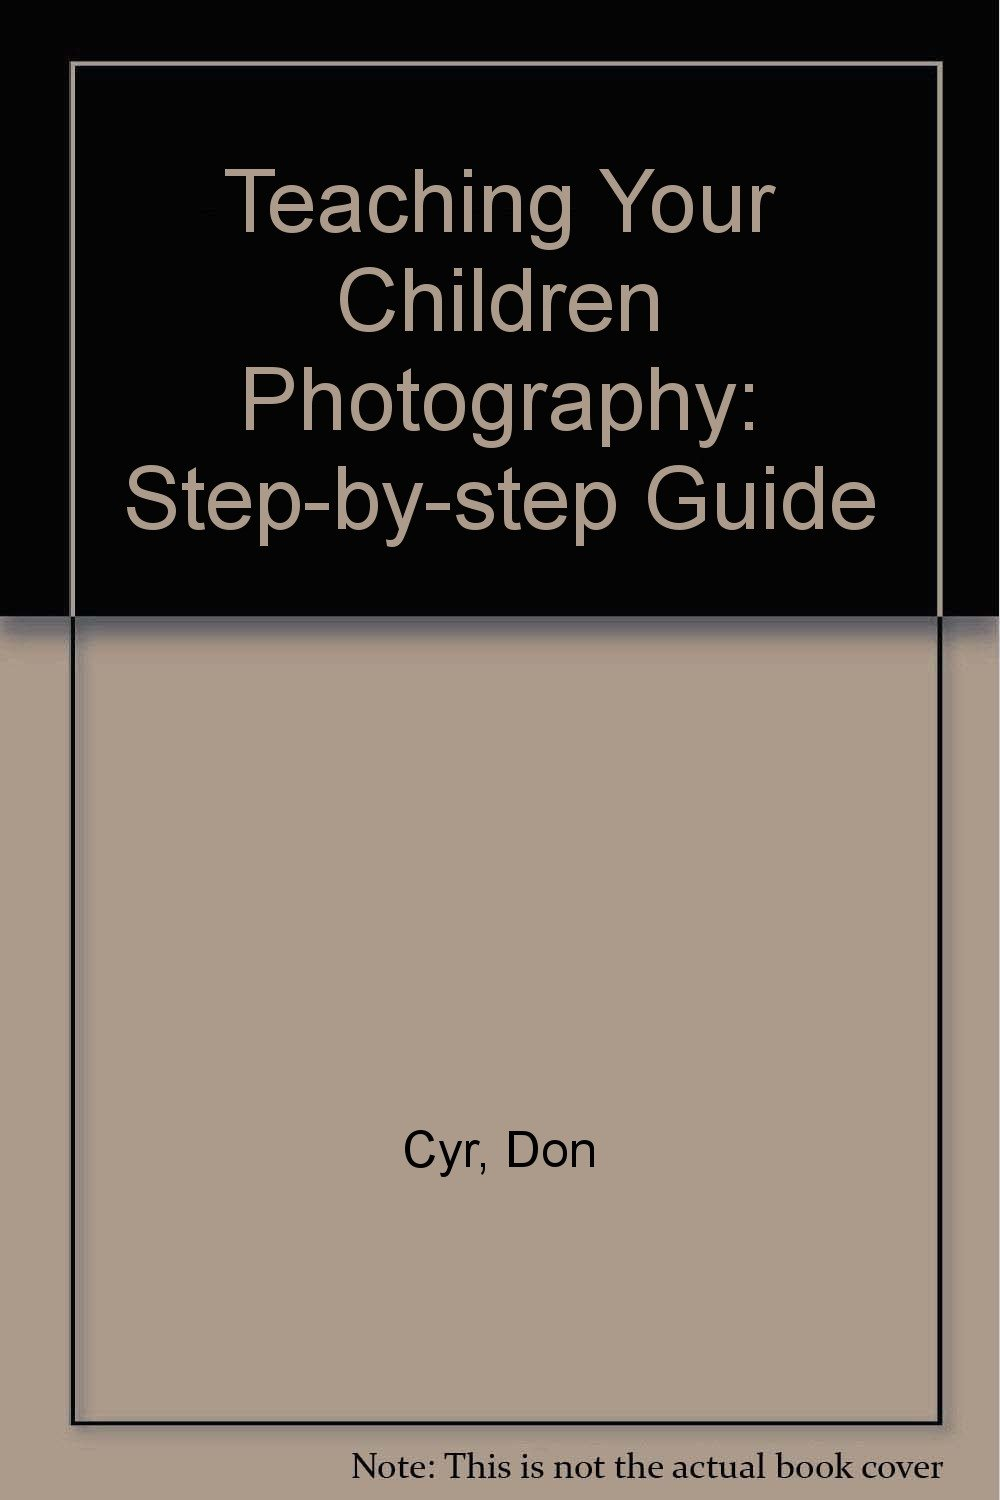 Teaching Your Children Photography: A Step-By-Step Guide